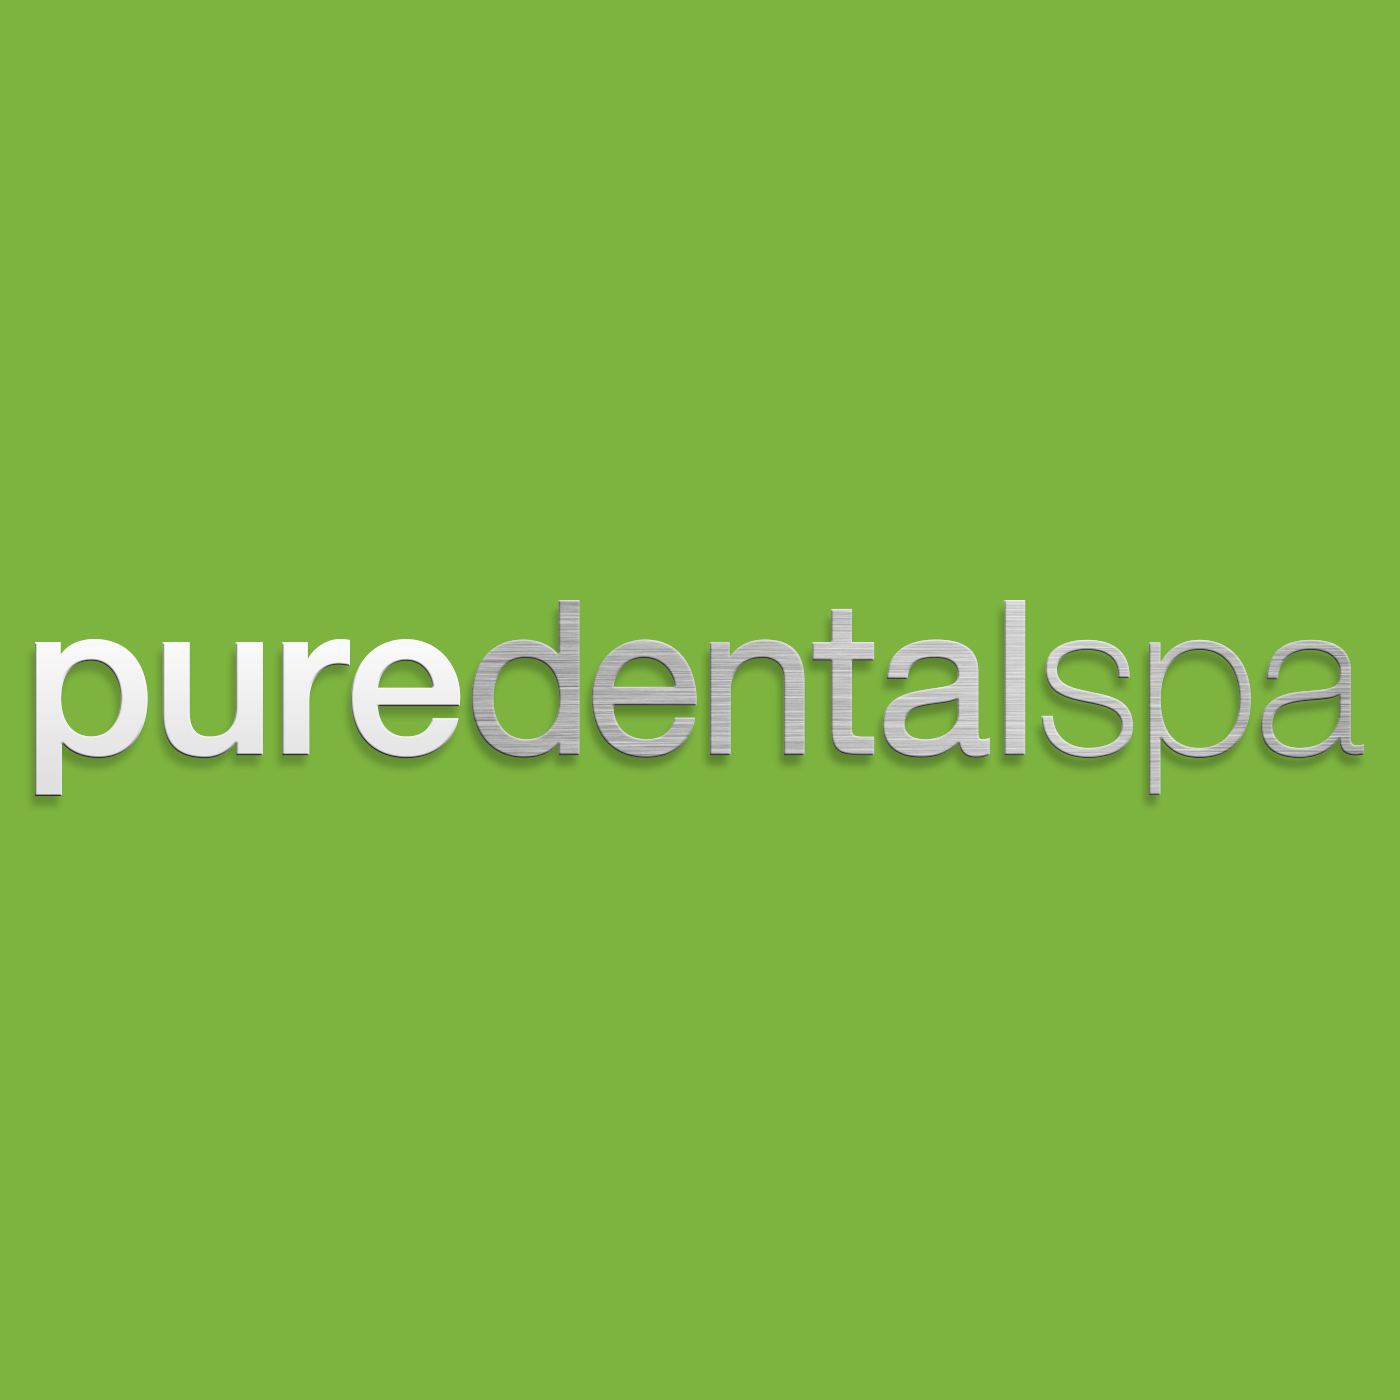 Pure Dental Spa Name Brand Identity Interior Design